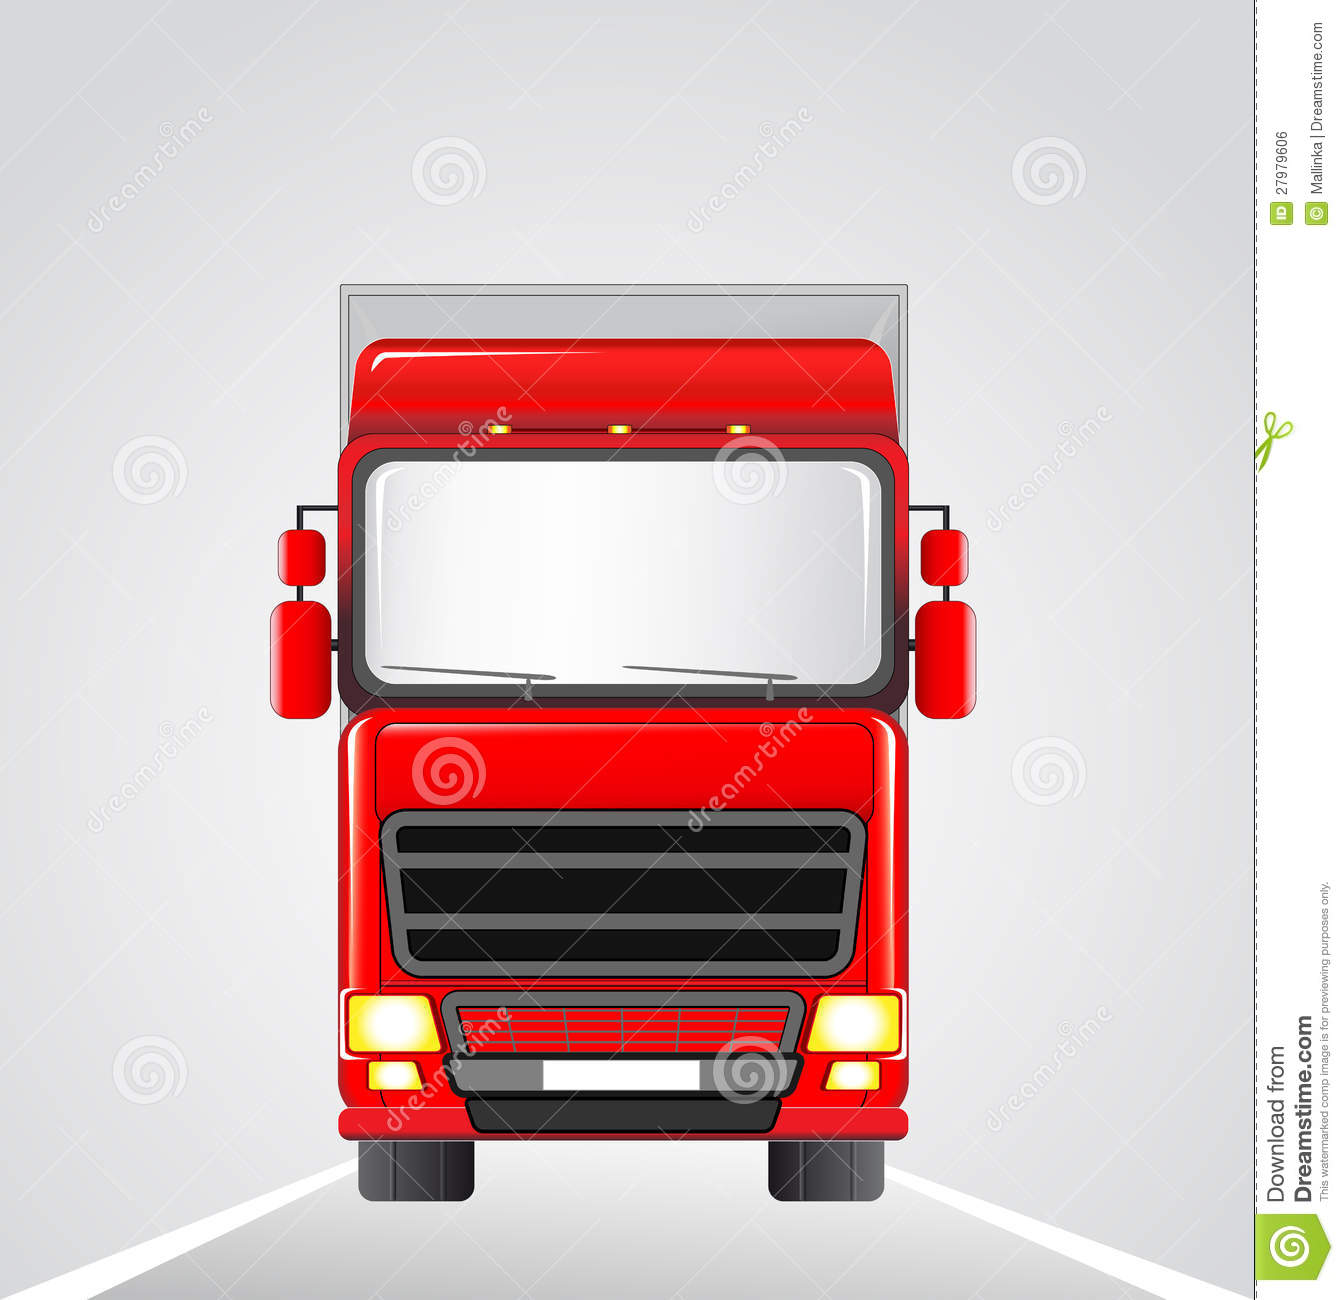 Delivery Truck On The Road Royalty Free Stock Image ...